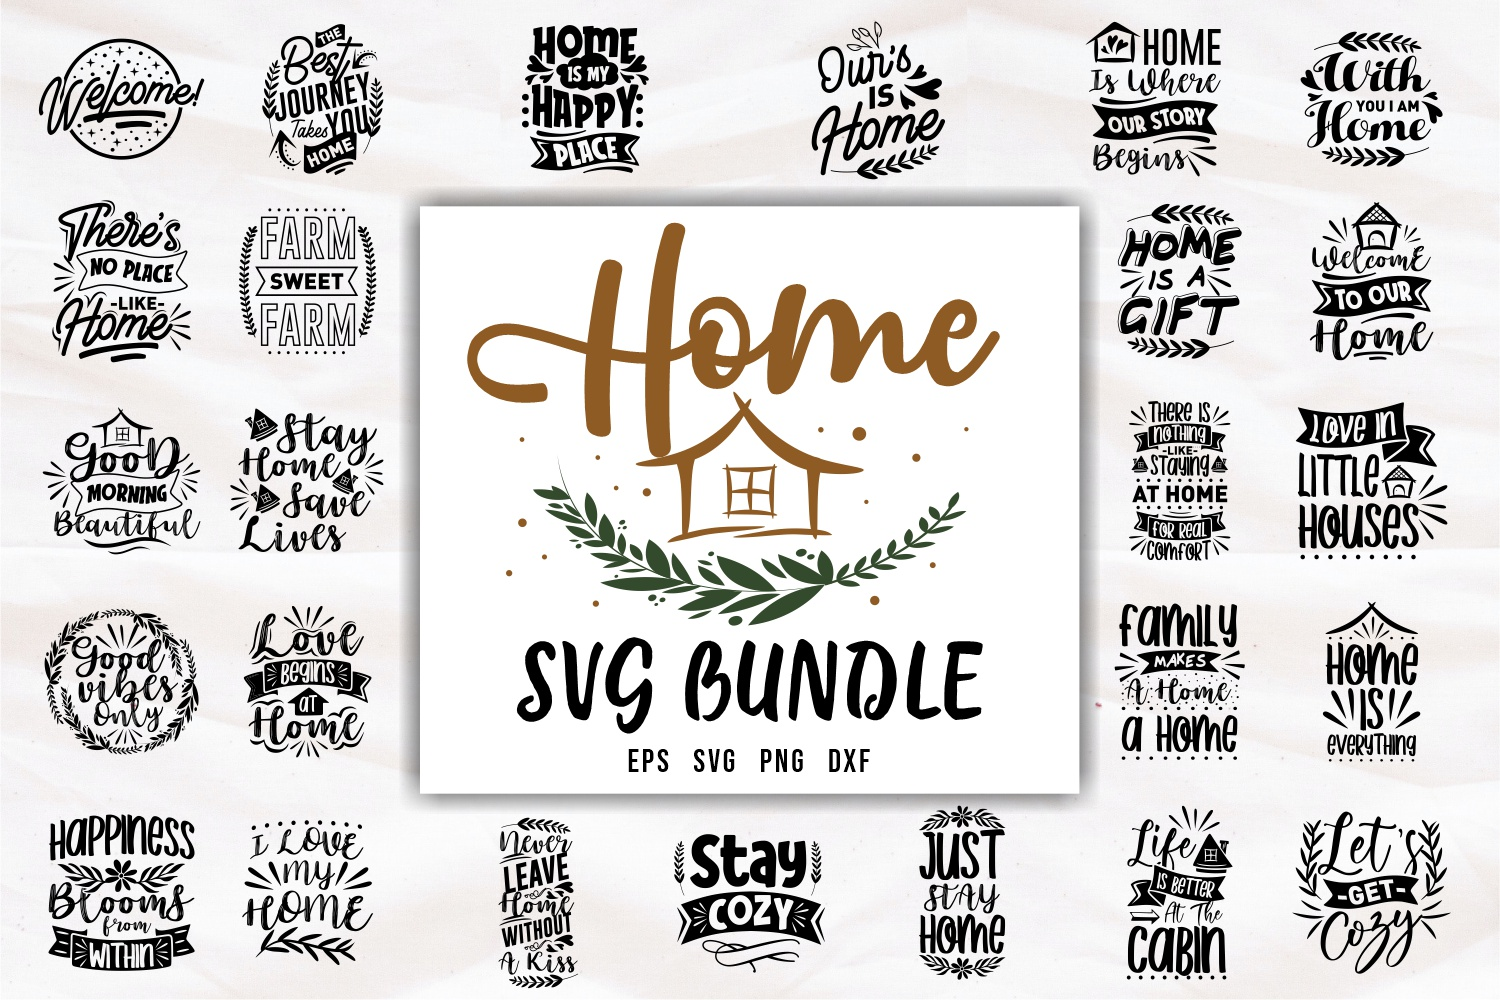 Home Quotes SVG Bundle, Craft Designs Collection Cut File - cover 23 -